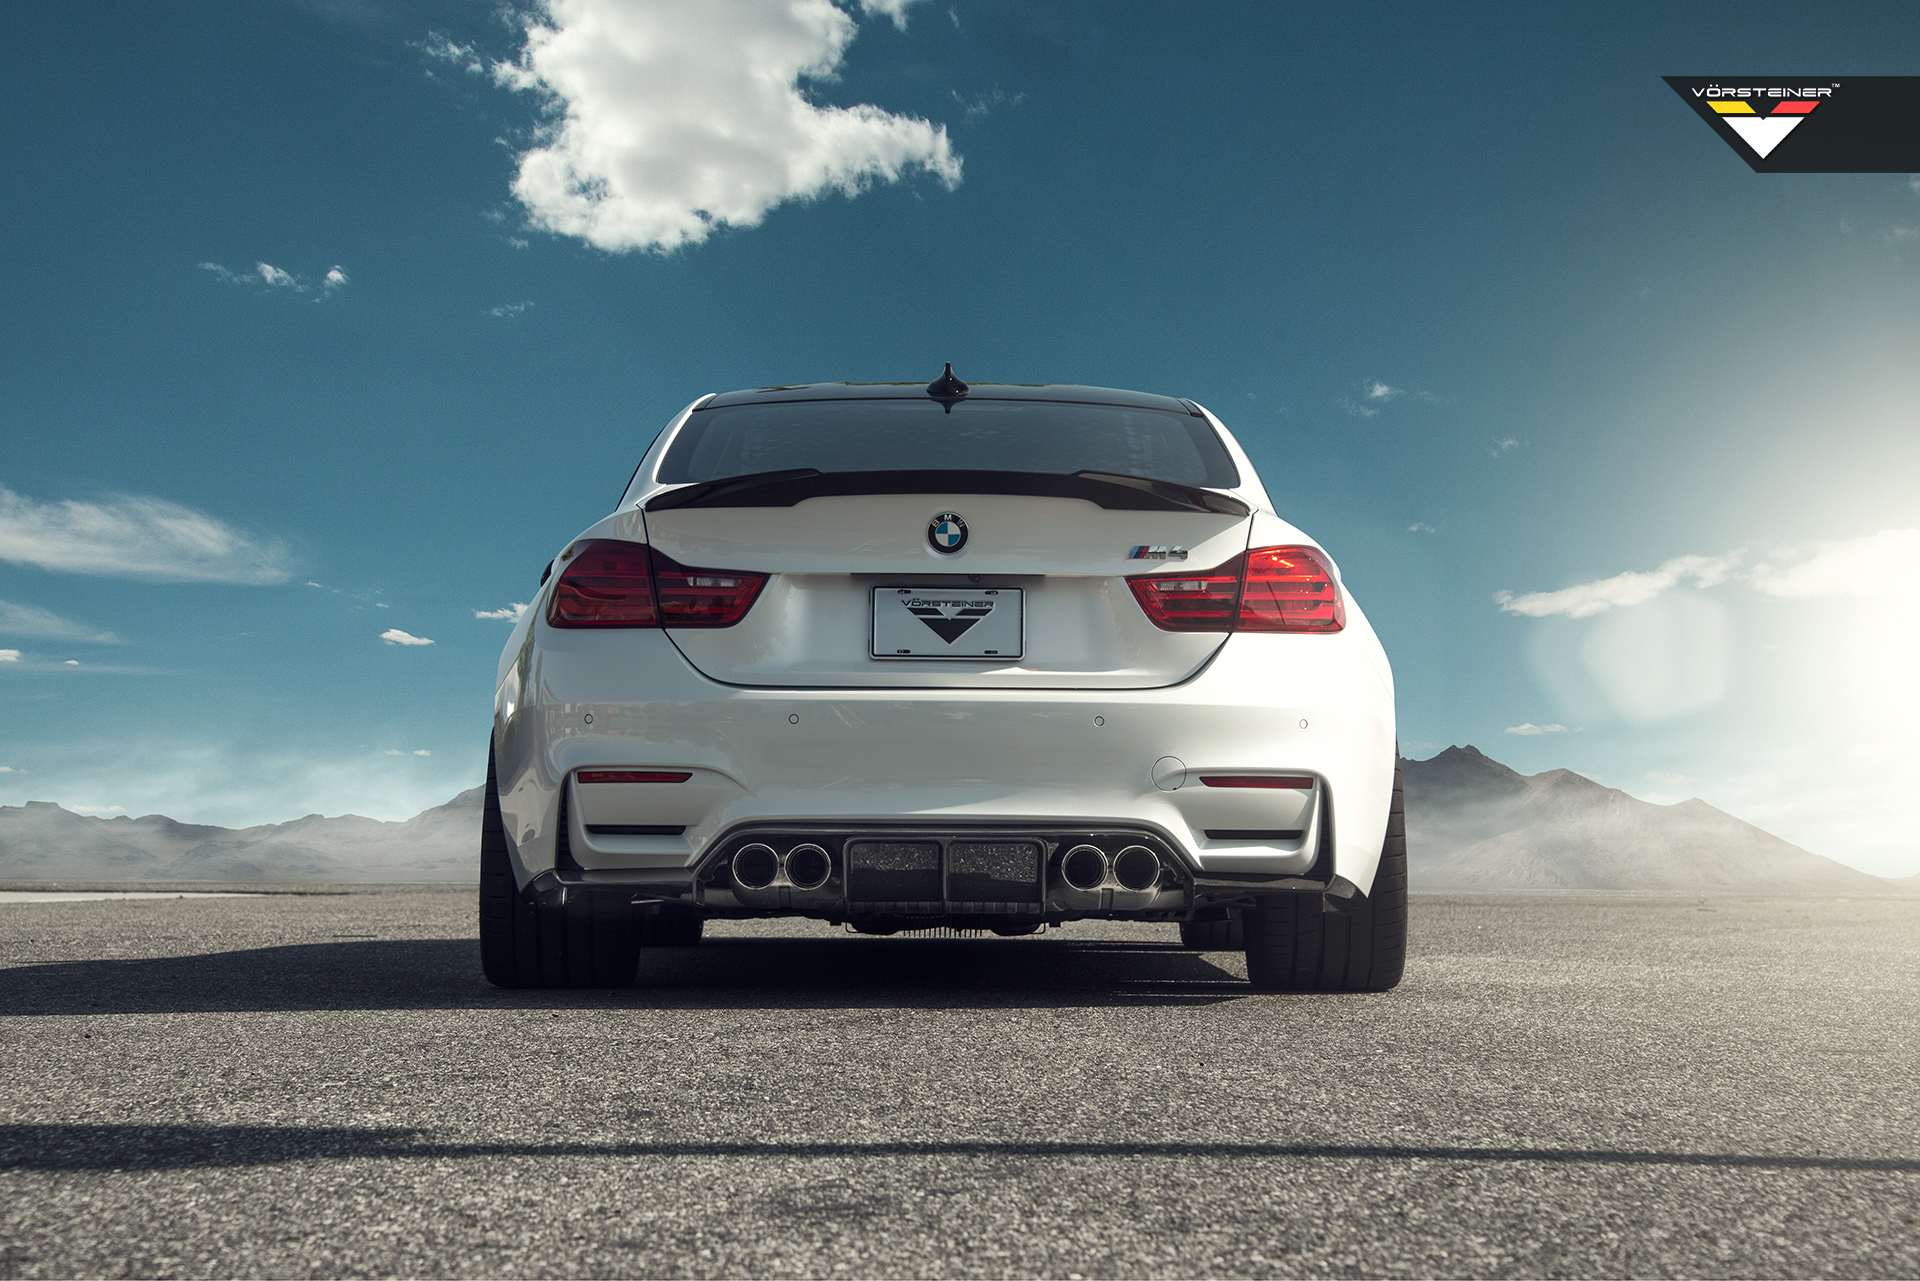 Vorsteiner Aero Front Spoiler And Evo Deck Lid For The Bmw M4